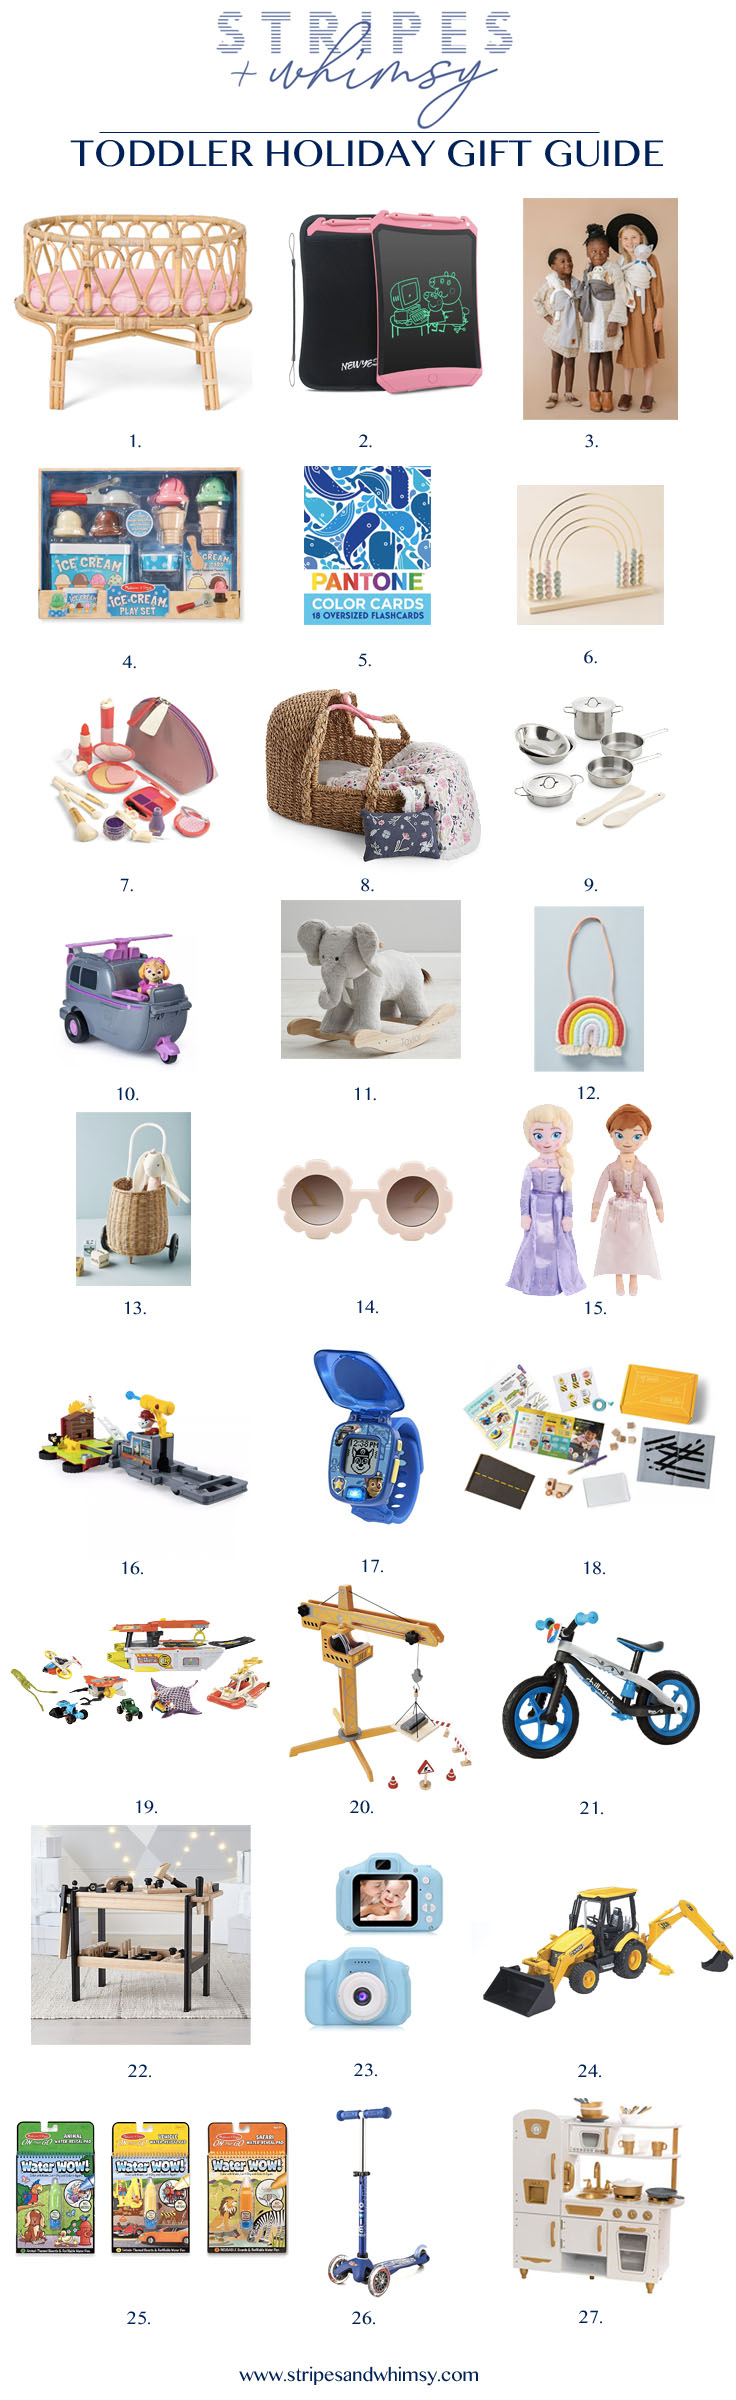 Toddler Holiday Gift Guide Stripes And Whimsy